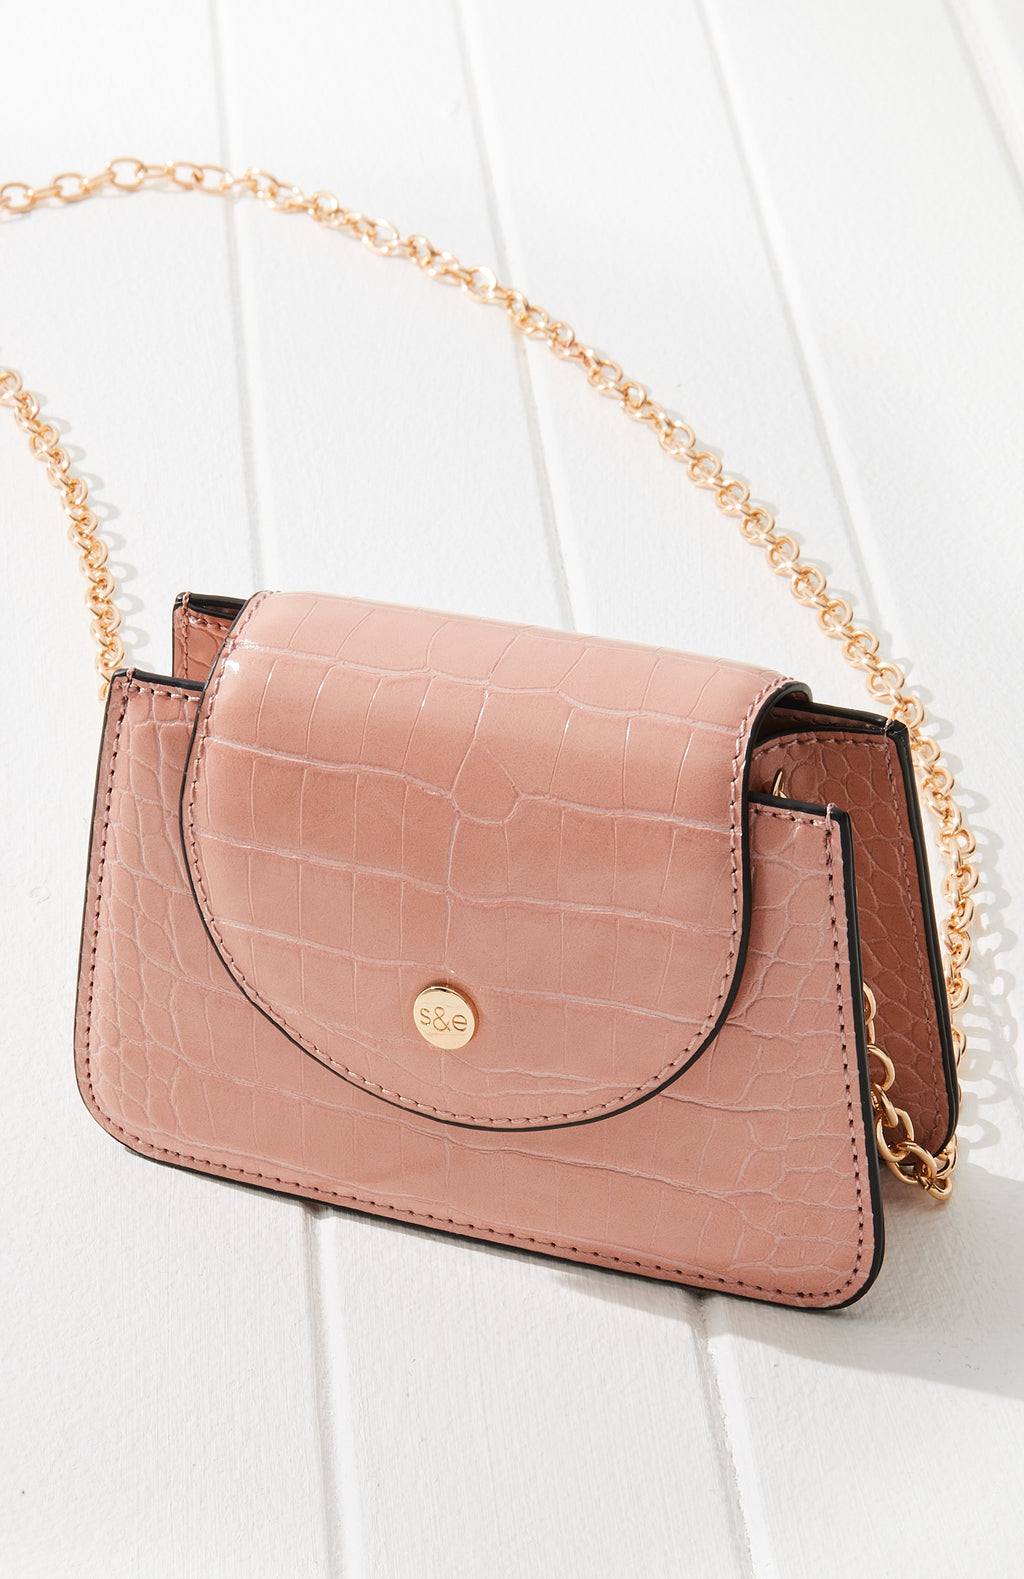 AS995008 Mini Croc Bag